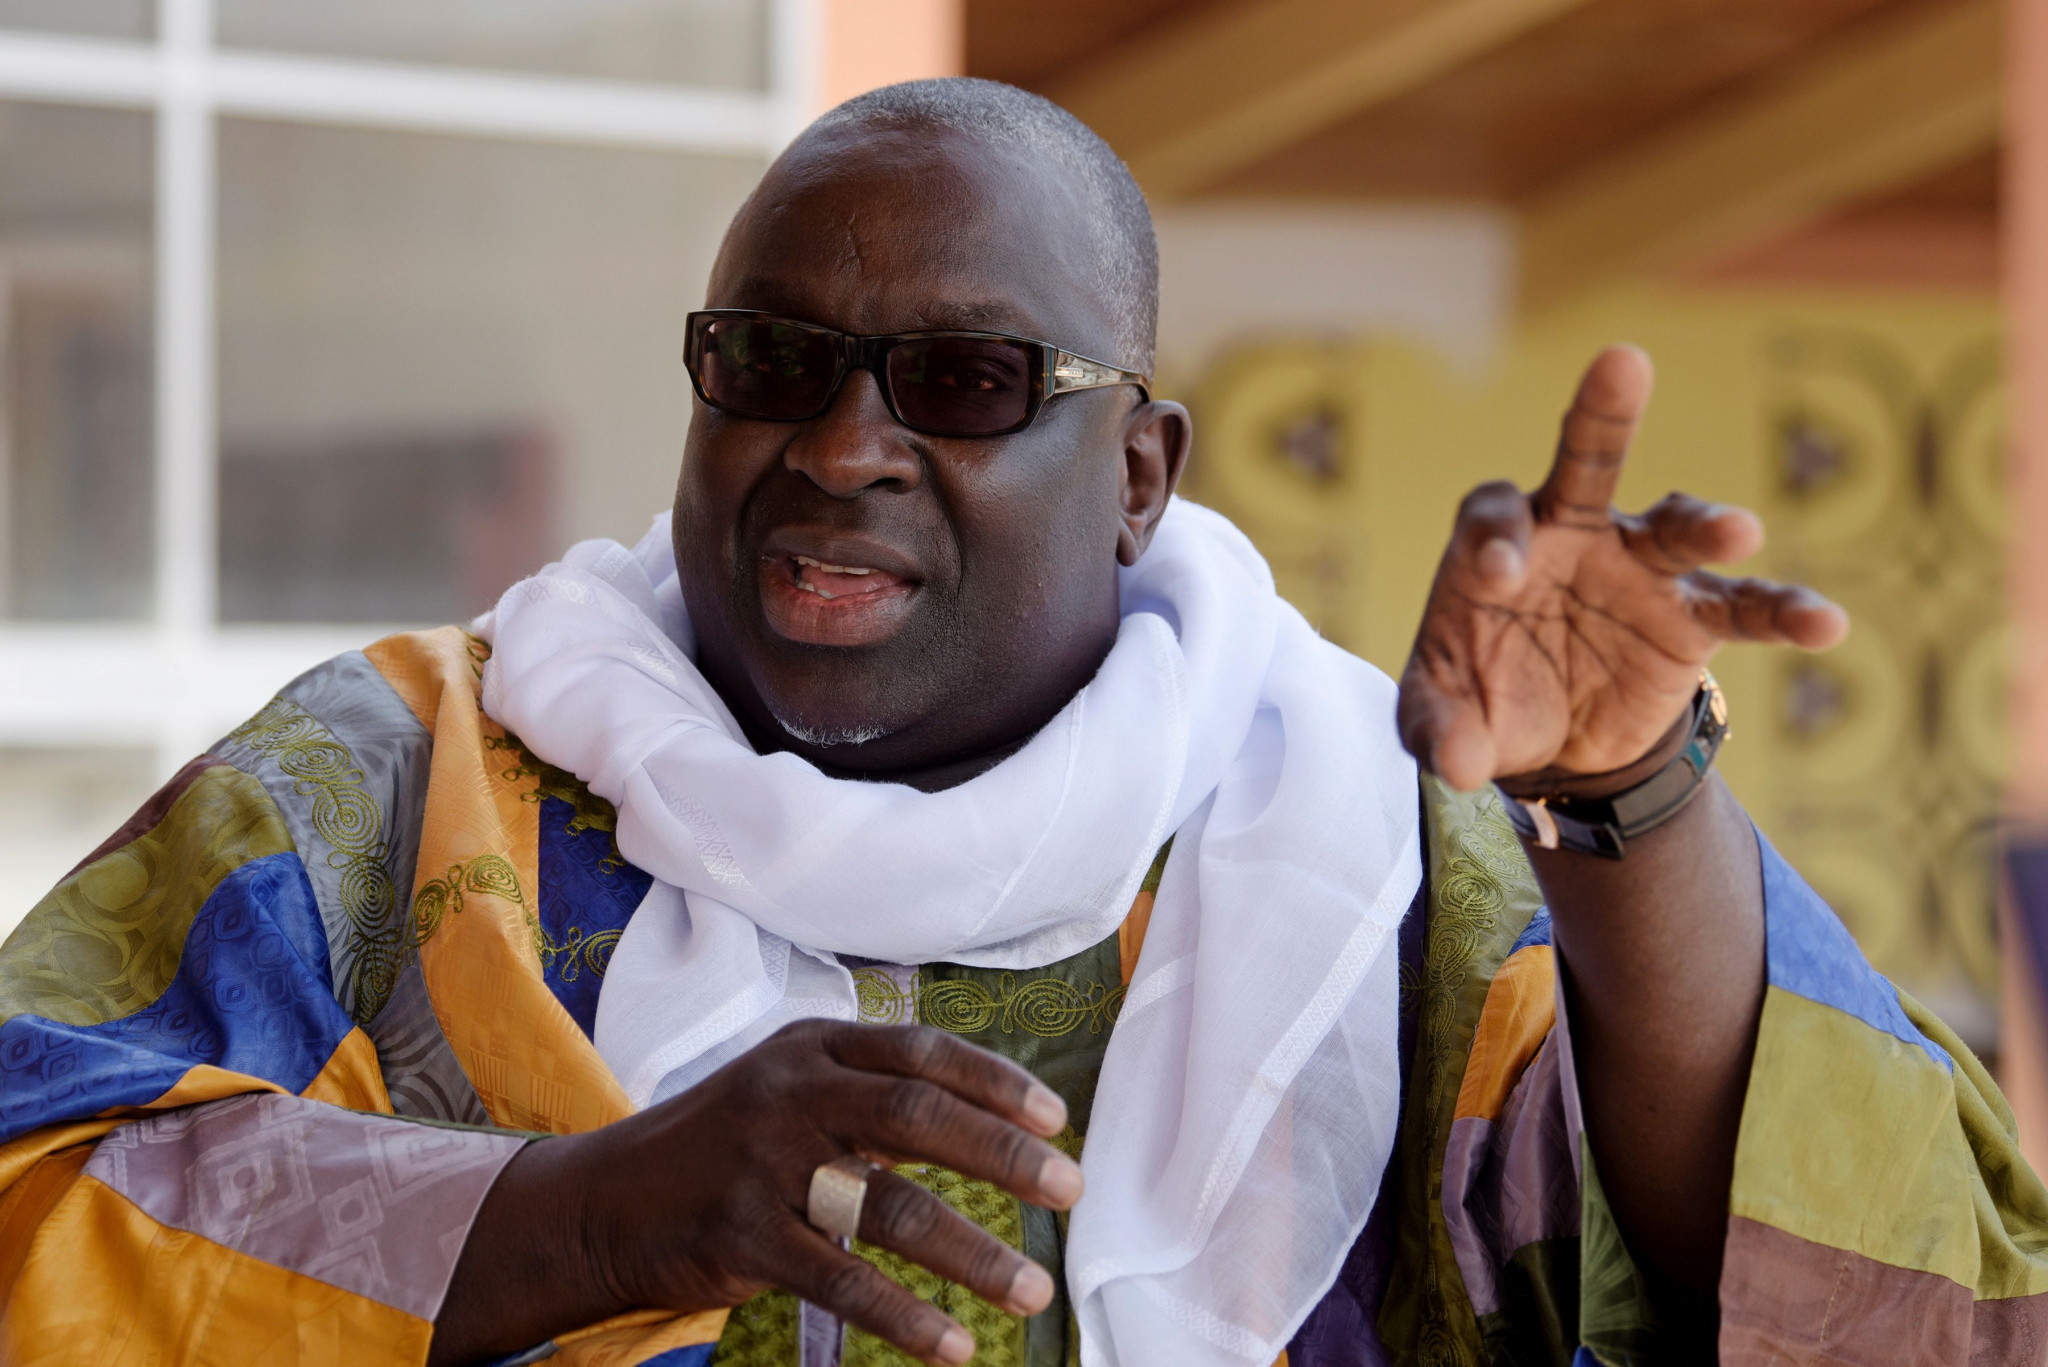 Papa Diack dismisses suggestions Takeda bribed him or father to help Tokyo 2020 win Olympic bid